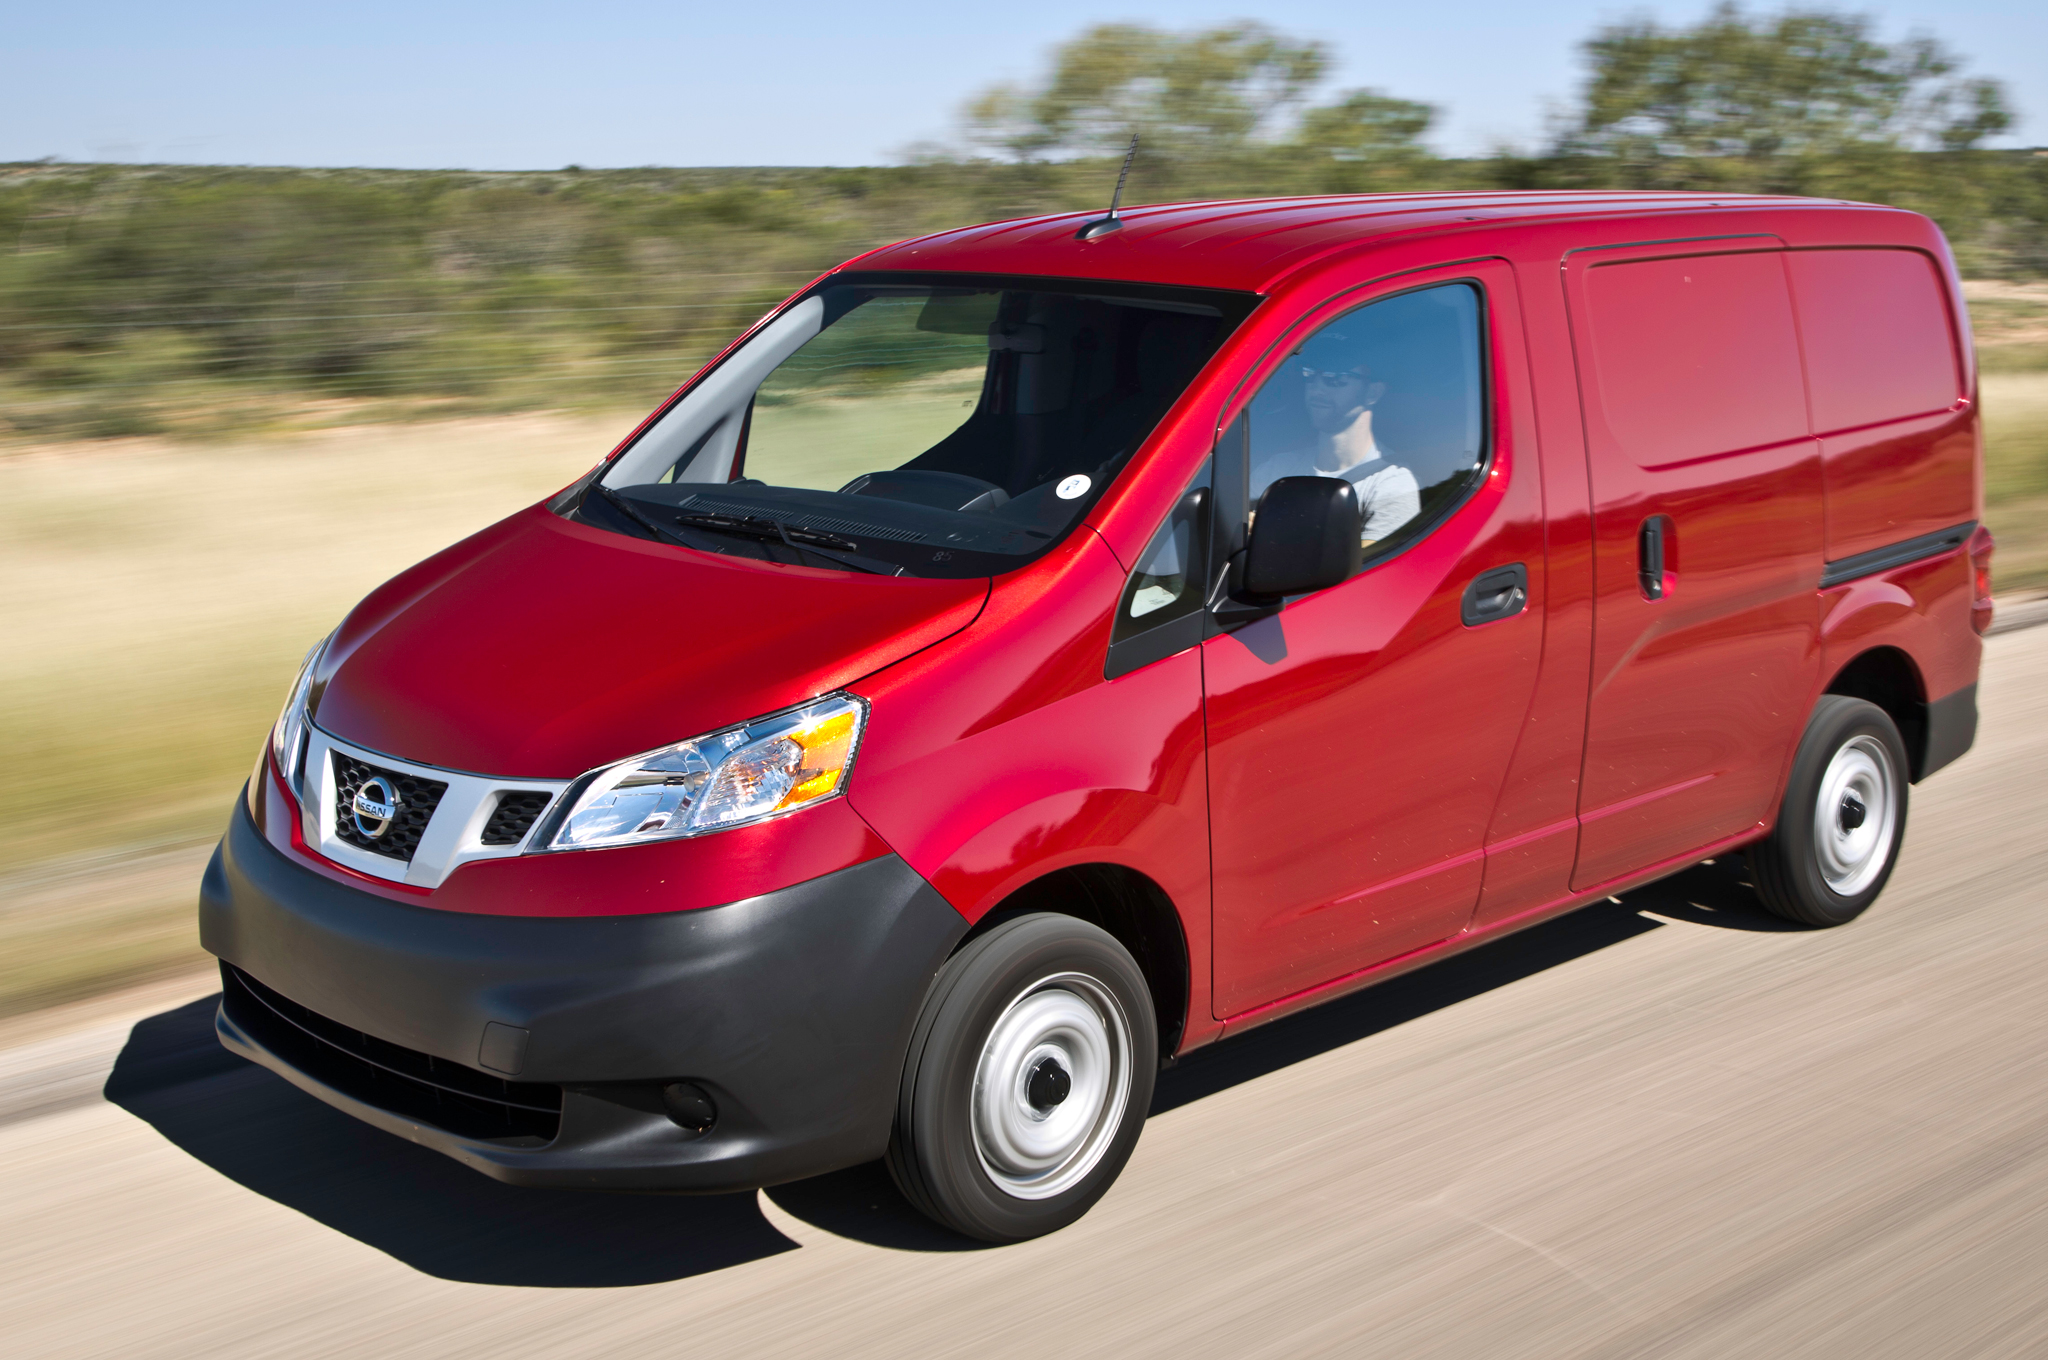 hight resolution of nissan nv200 radio wiring diagram wiring library 2014 motor trend truck of the year contender nissan